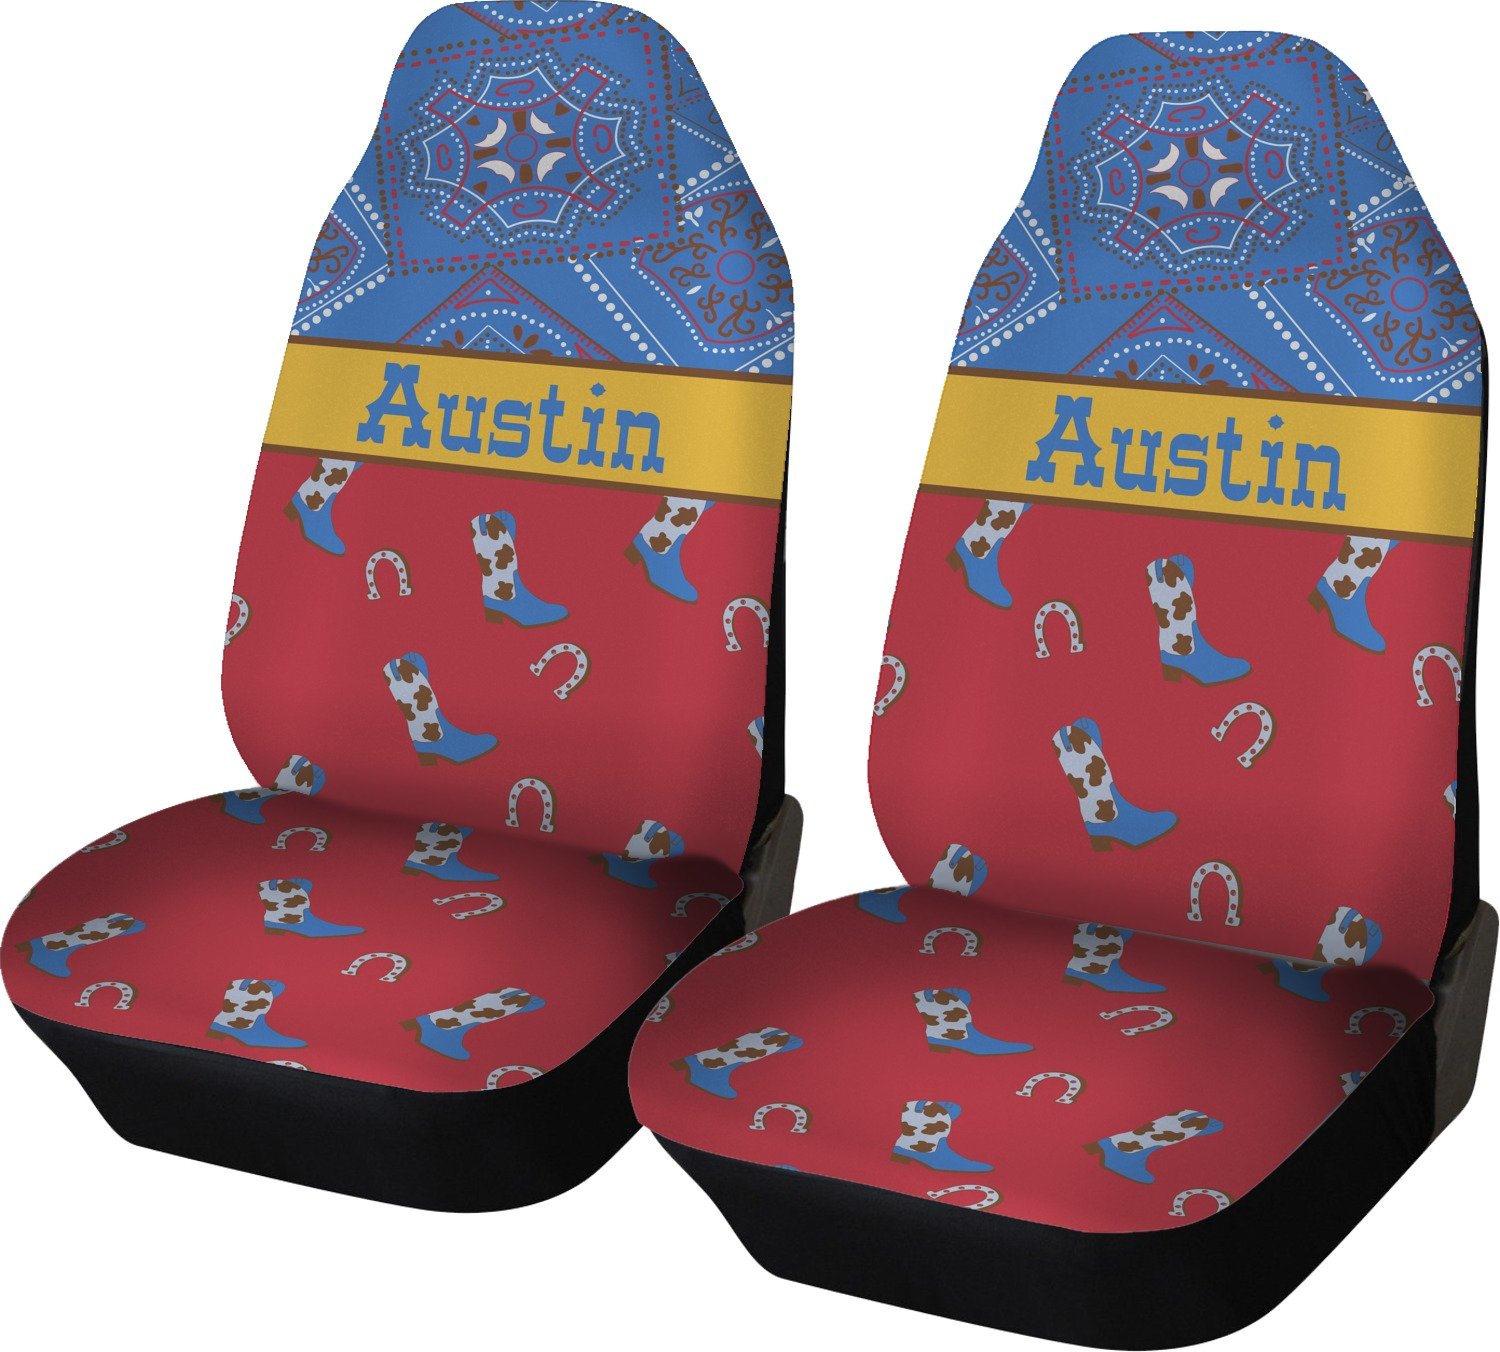 Pleasing Cowboy Car Seat Covers Set Of Two Personalized Alphanode Cool Chair Designs And Ideas Alphanodeonline